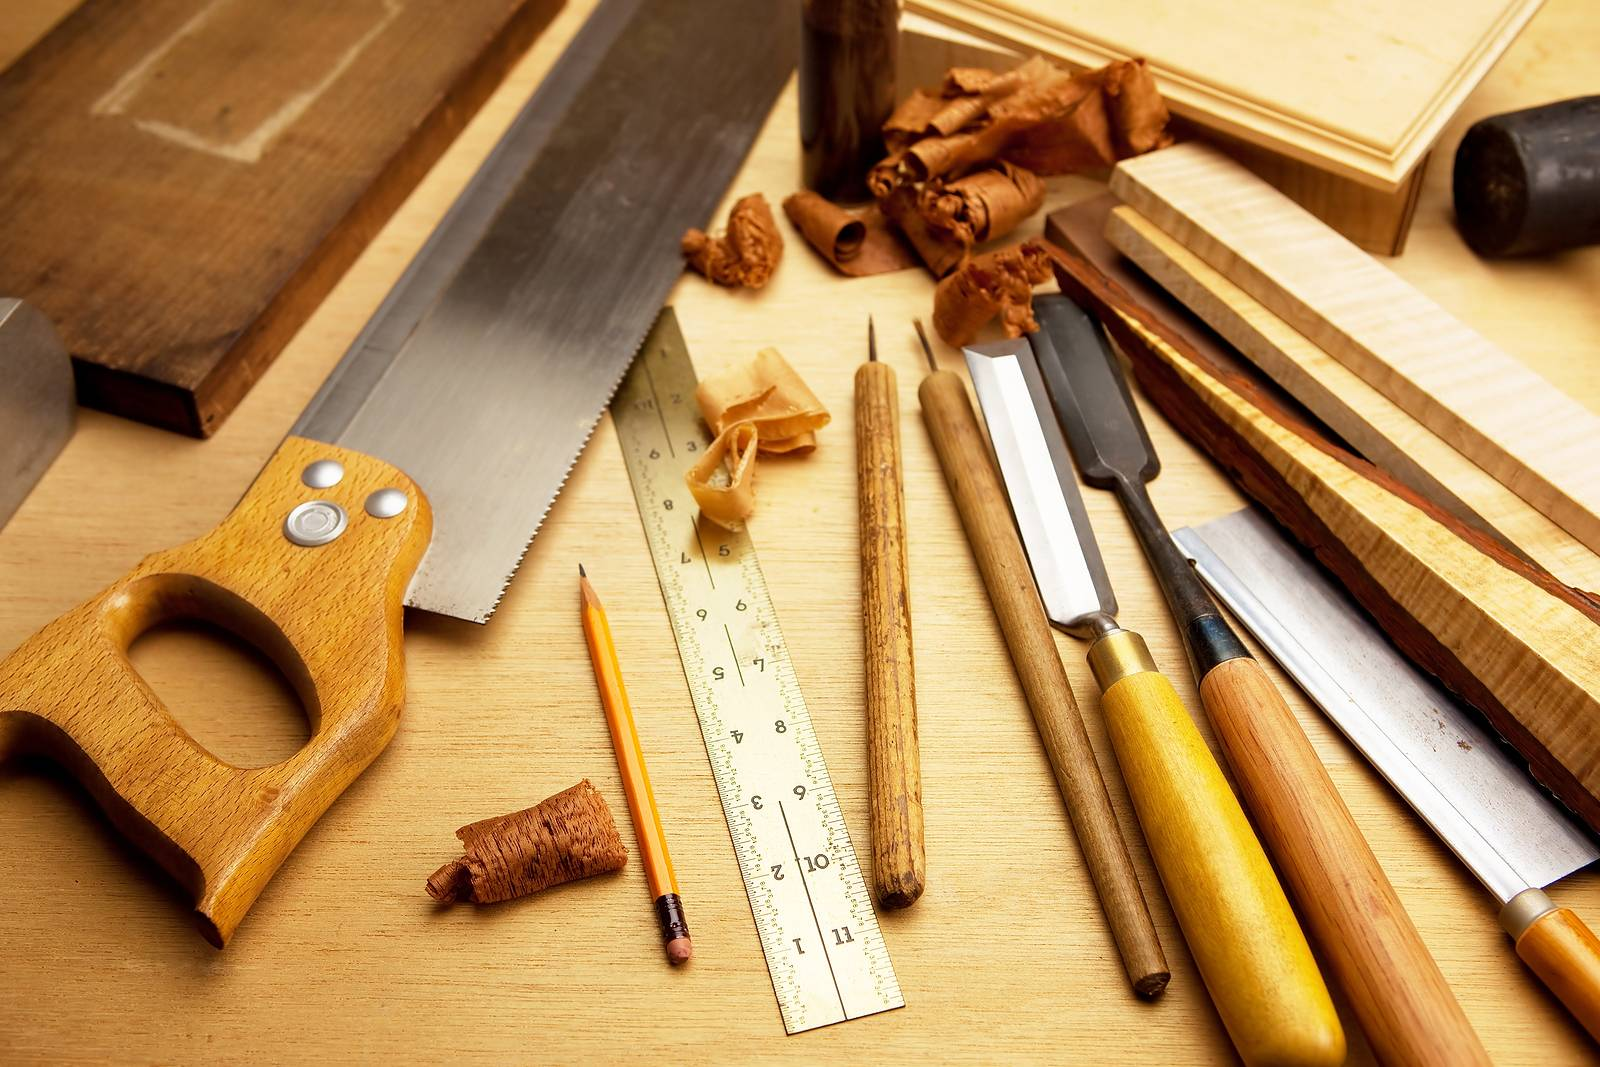 Check Out These Tips About Woodworking To Gain Comprehensive Knowledge Of The Topic